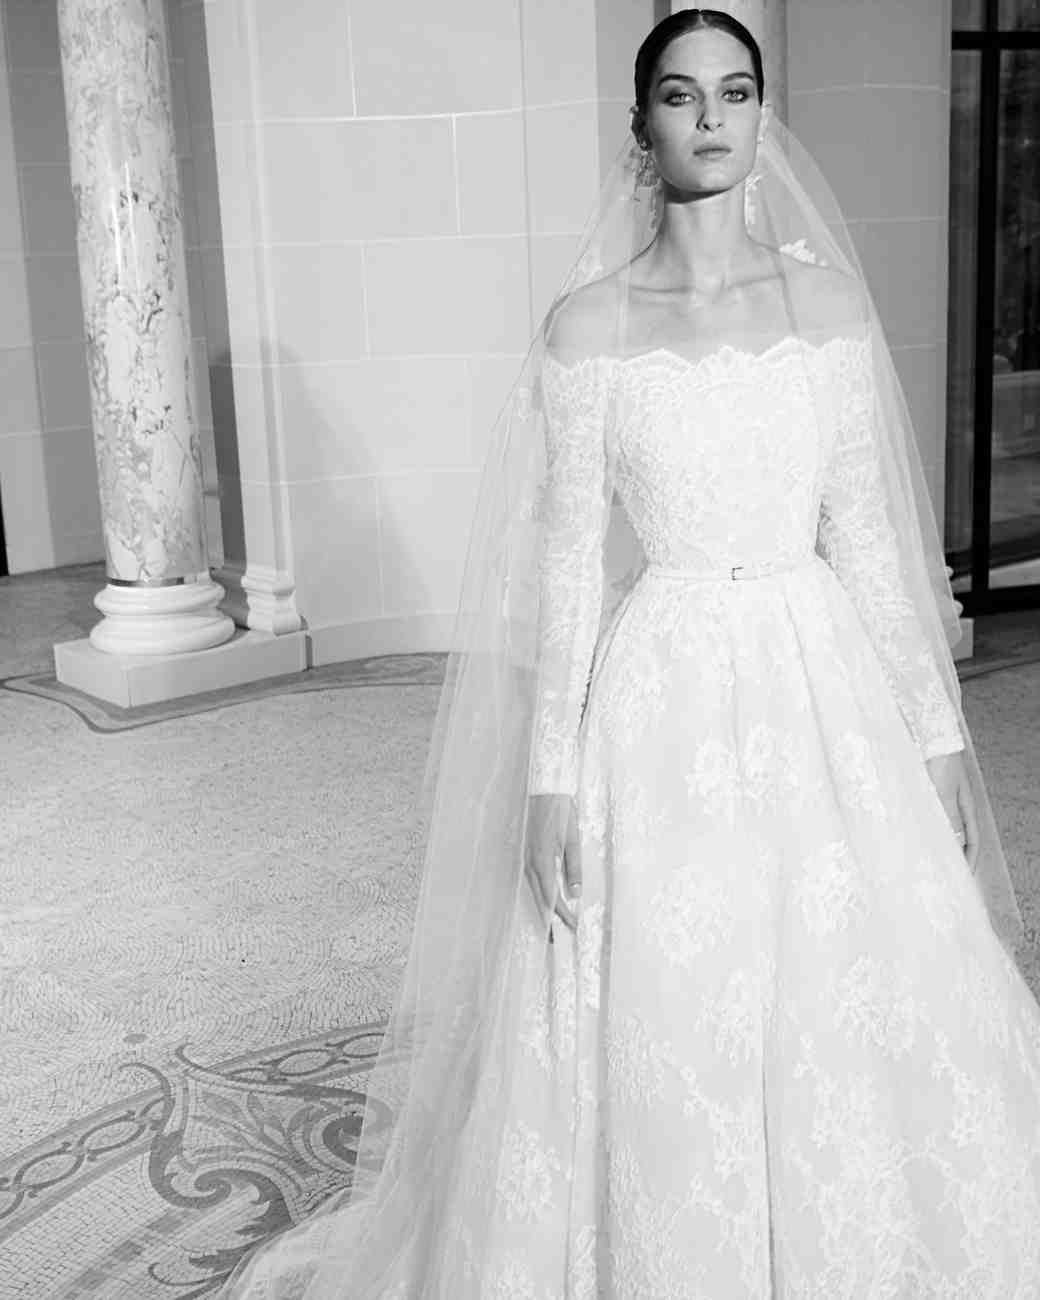 Wedding Gowns: Long-Sleeved Wedding Dresses We Love